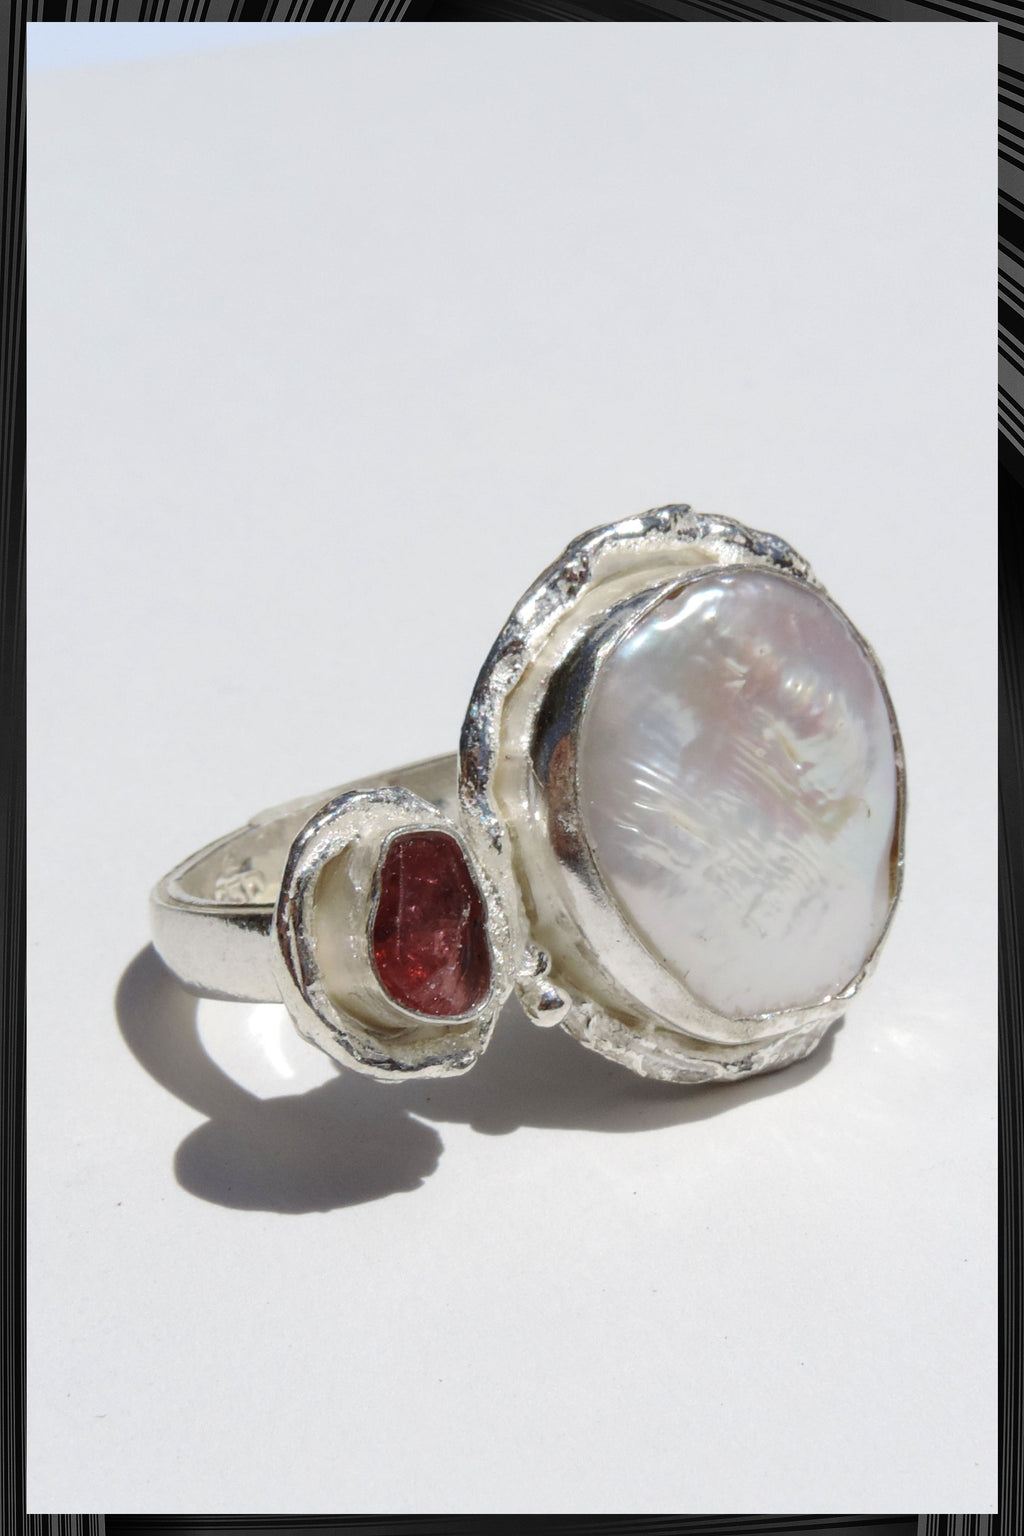 The Pearl and Garnet Ring | Free Delivery - 2-3 Weeks Shipping